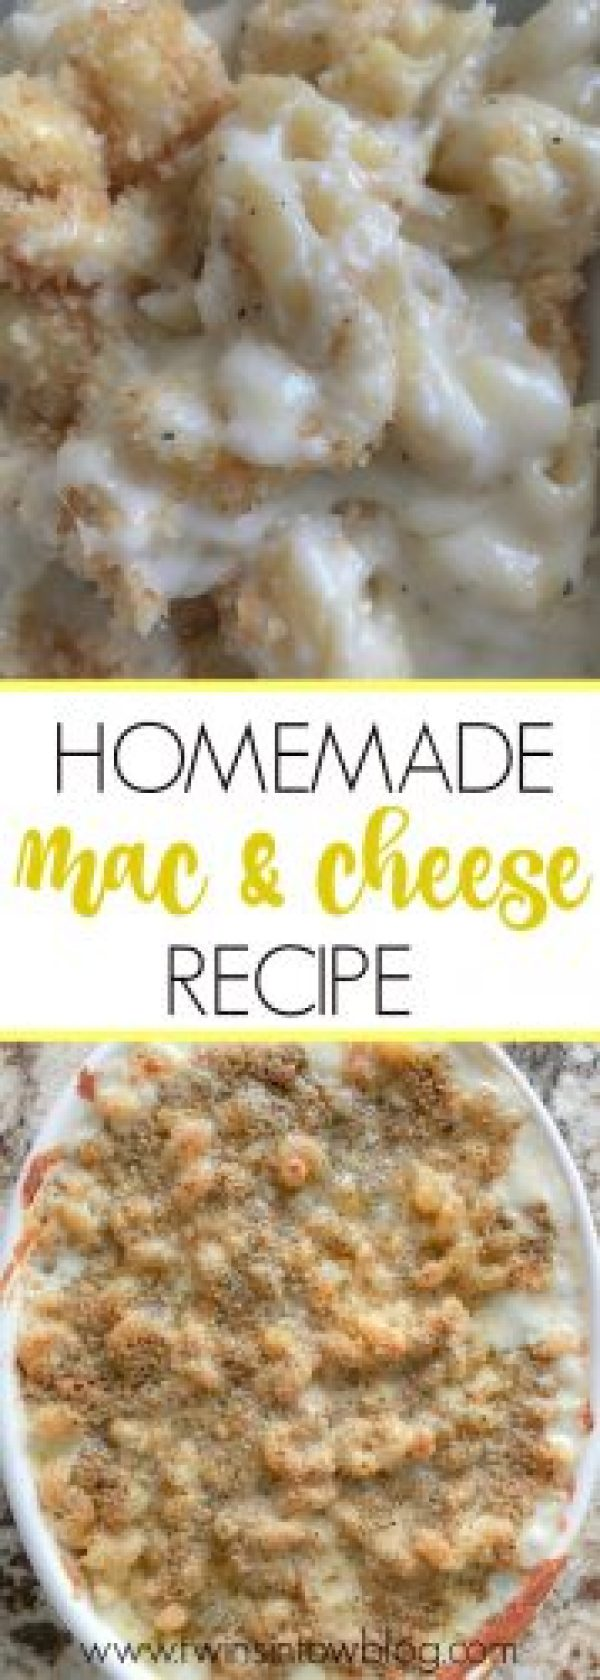 homemade mac and cheese